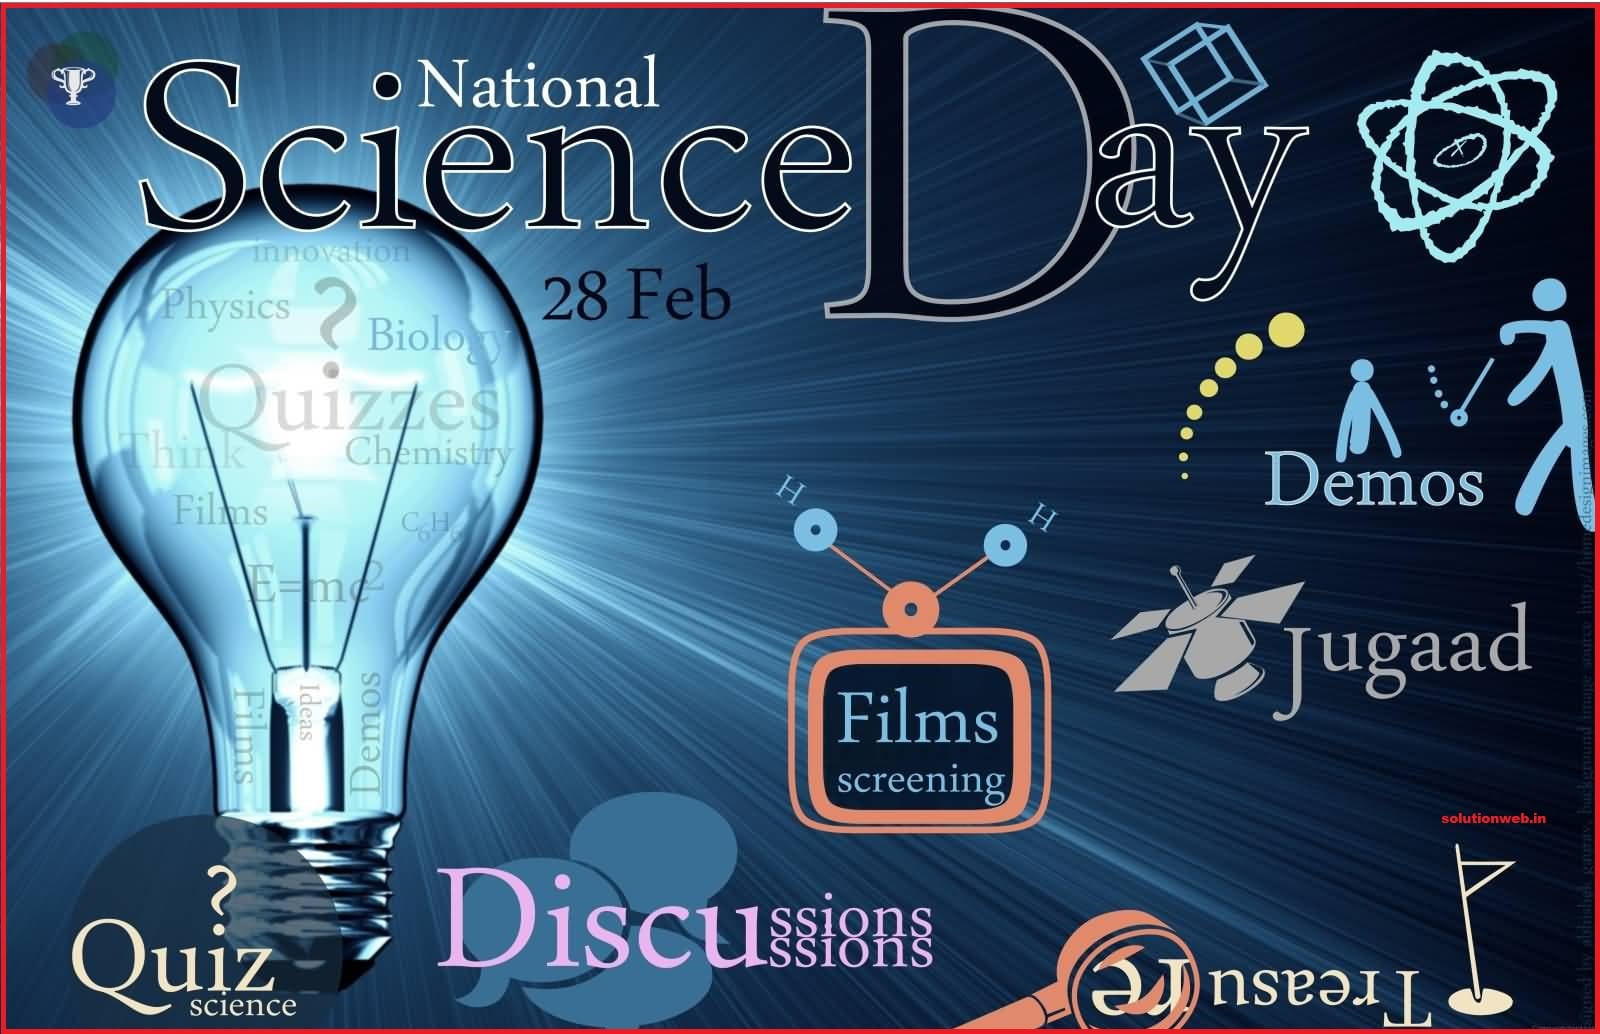 National Science Day in India